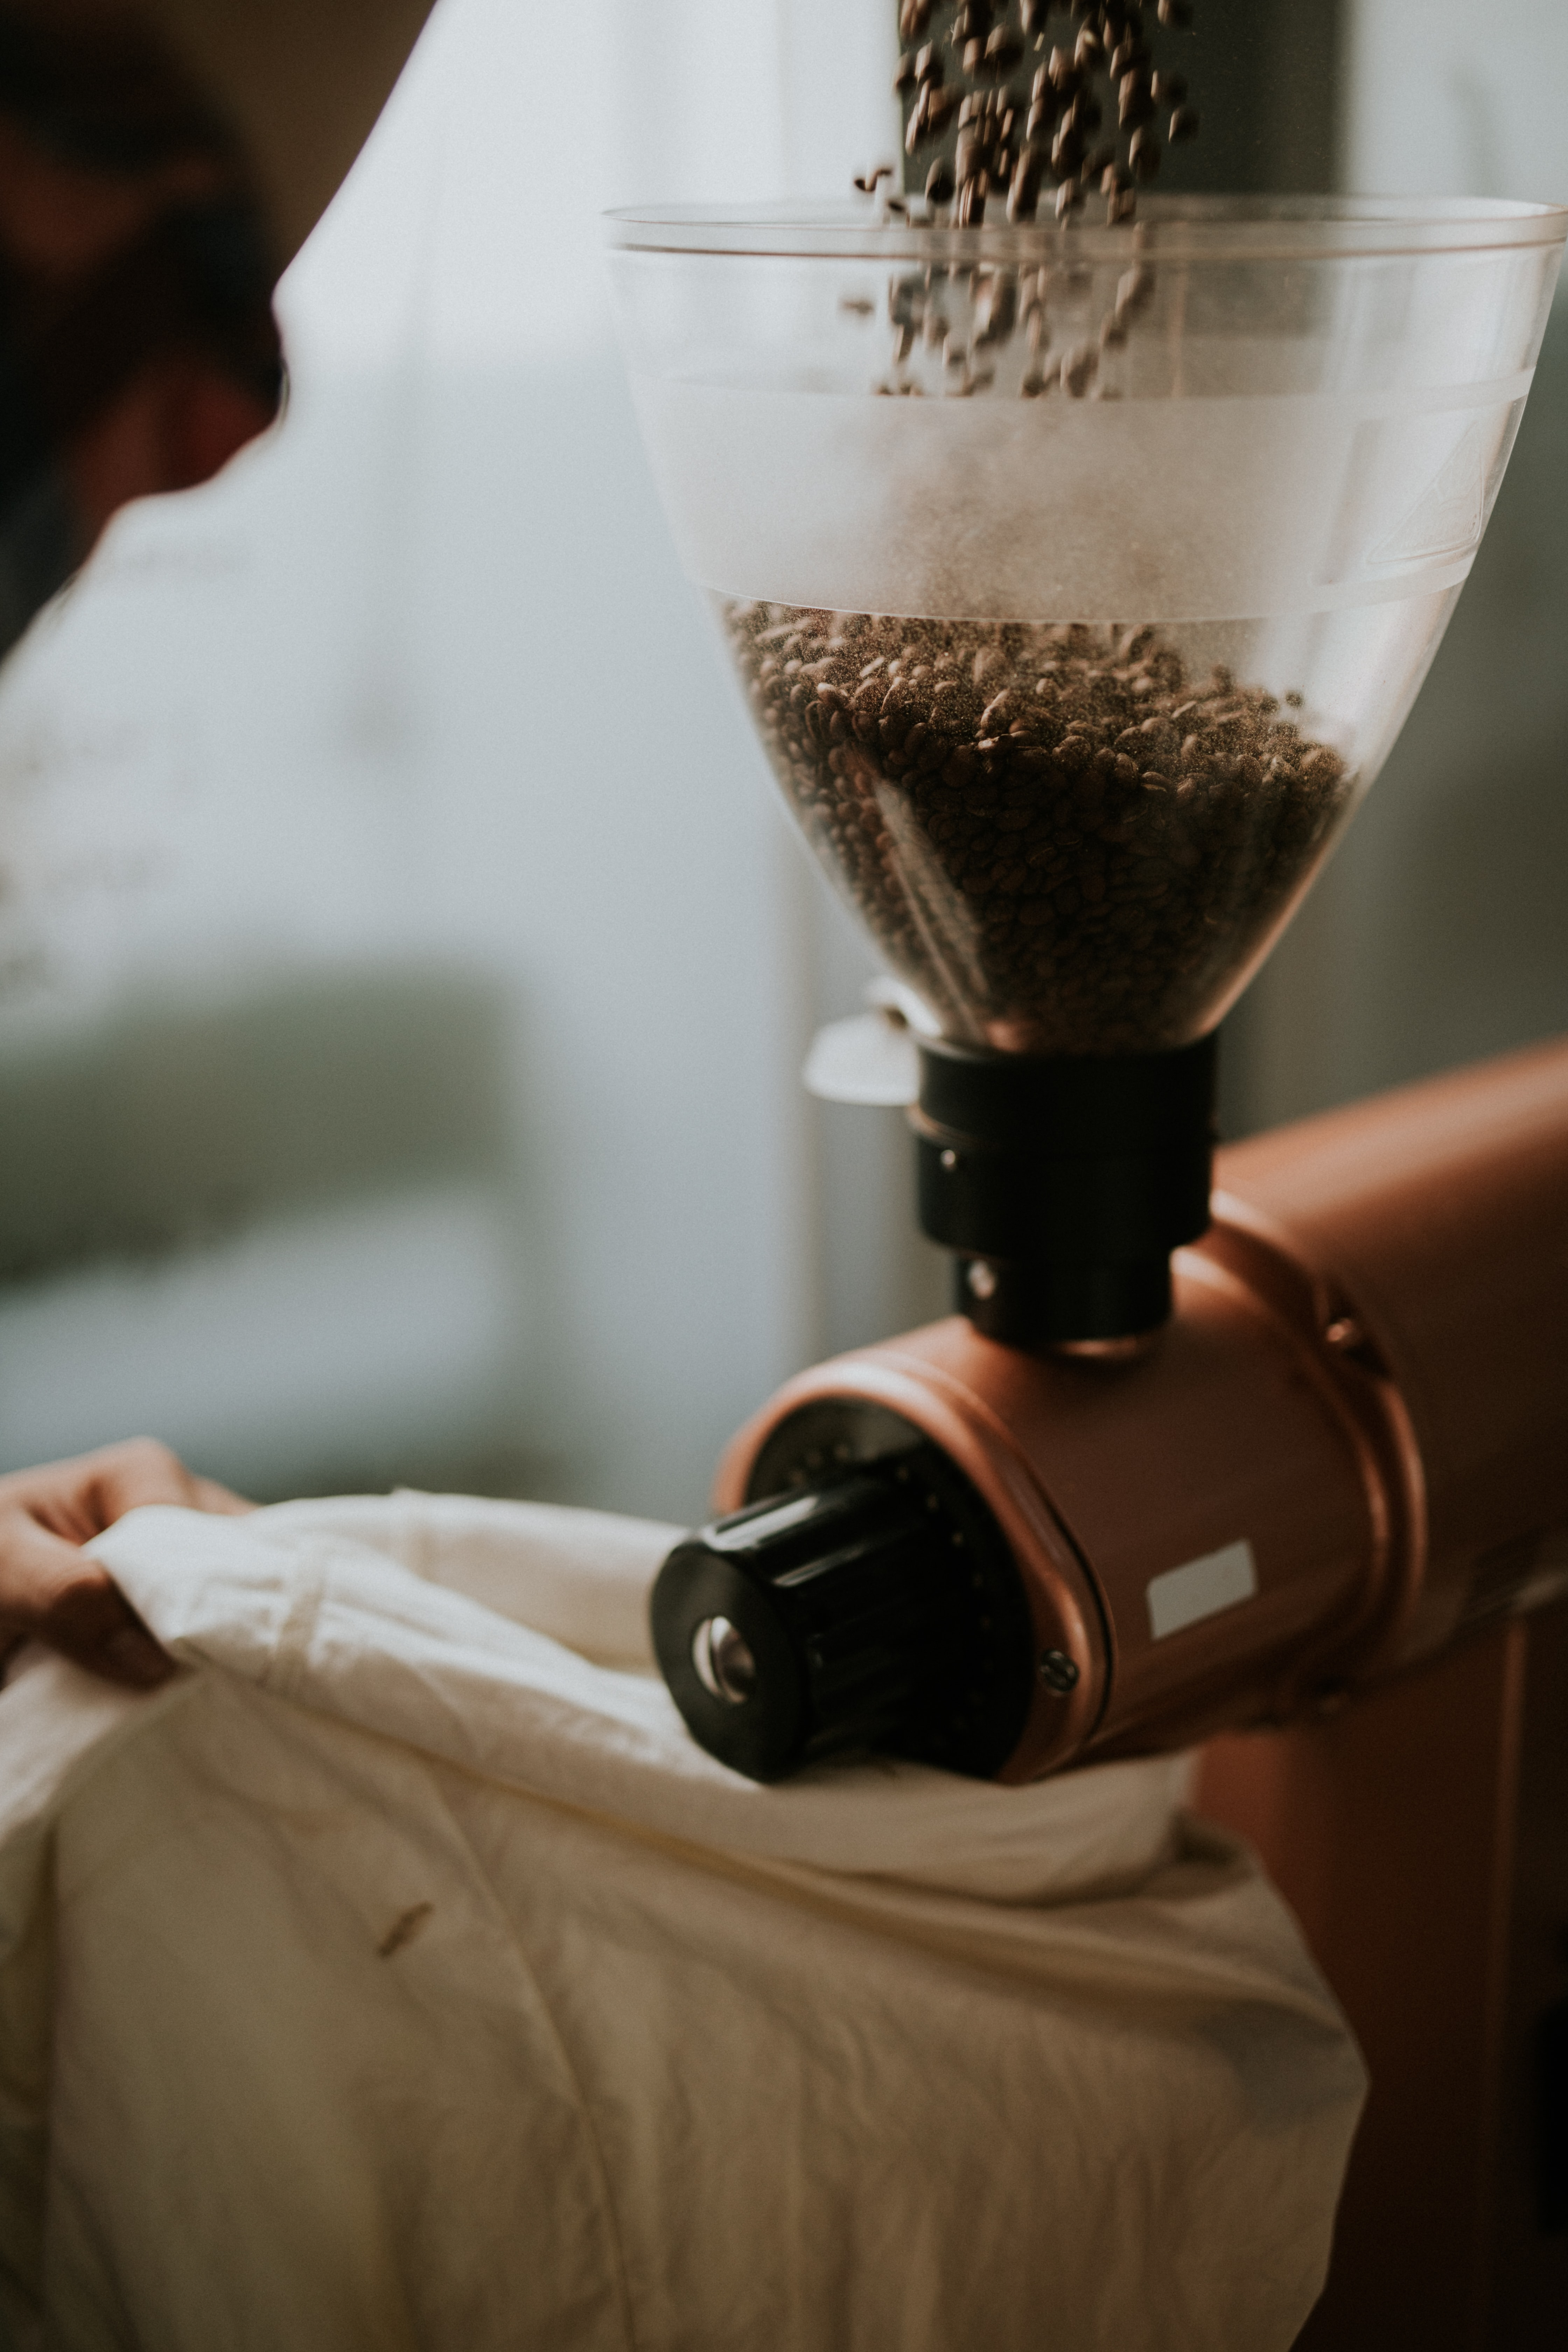 Pouring coffee beans into a grinder in a cafe kitchen